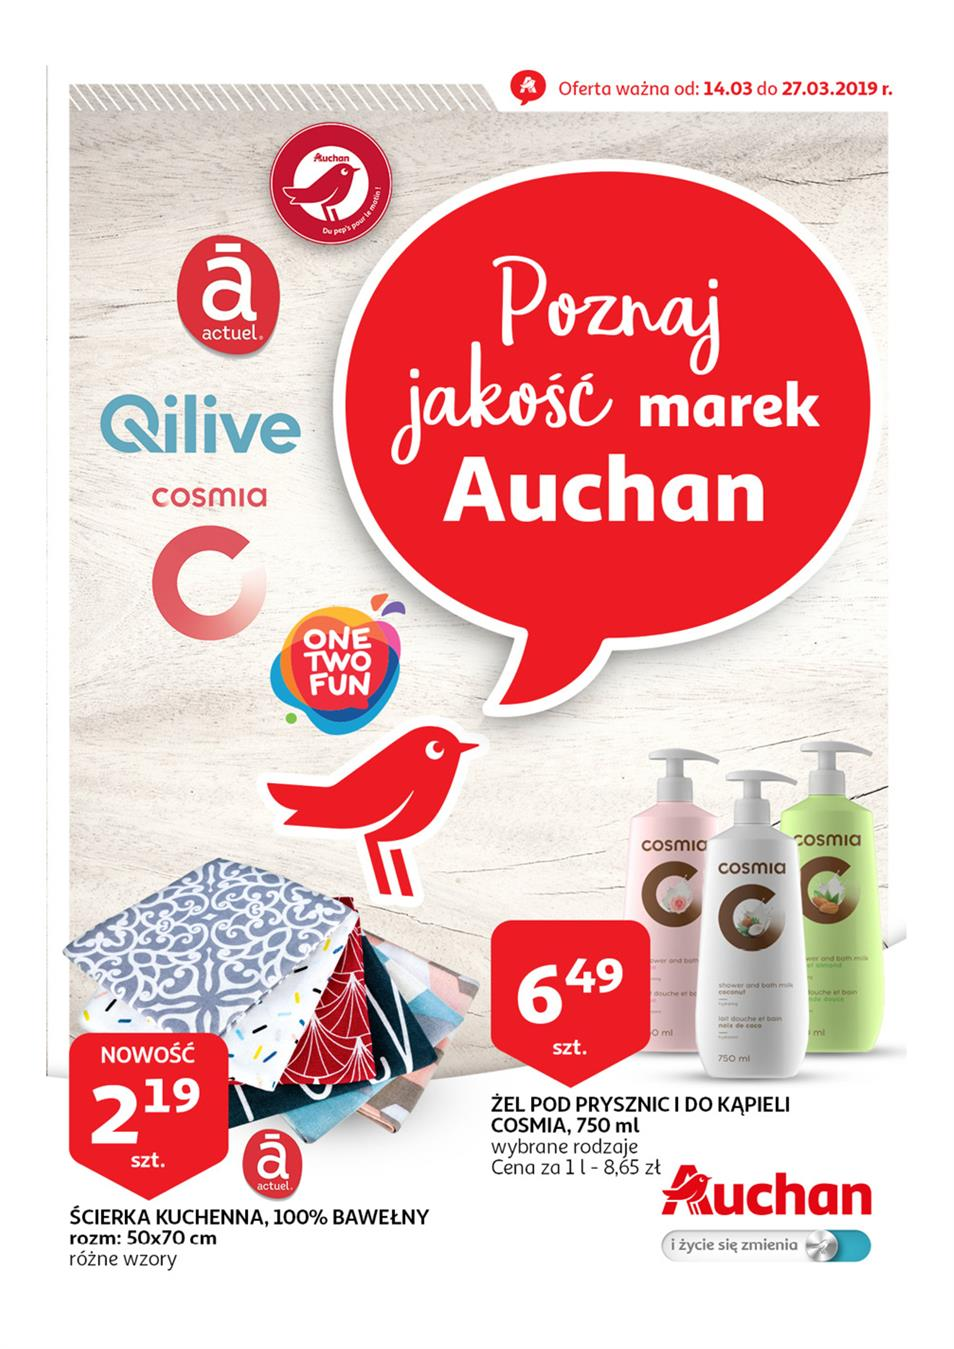 Gazetka Auchan Polska Sp. z o.o. nr 1 od 2019-03-14 do 2019-03-27